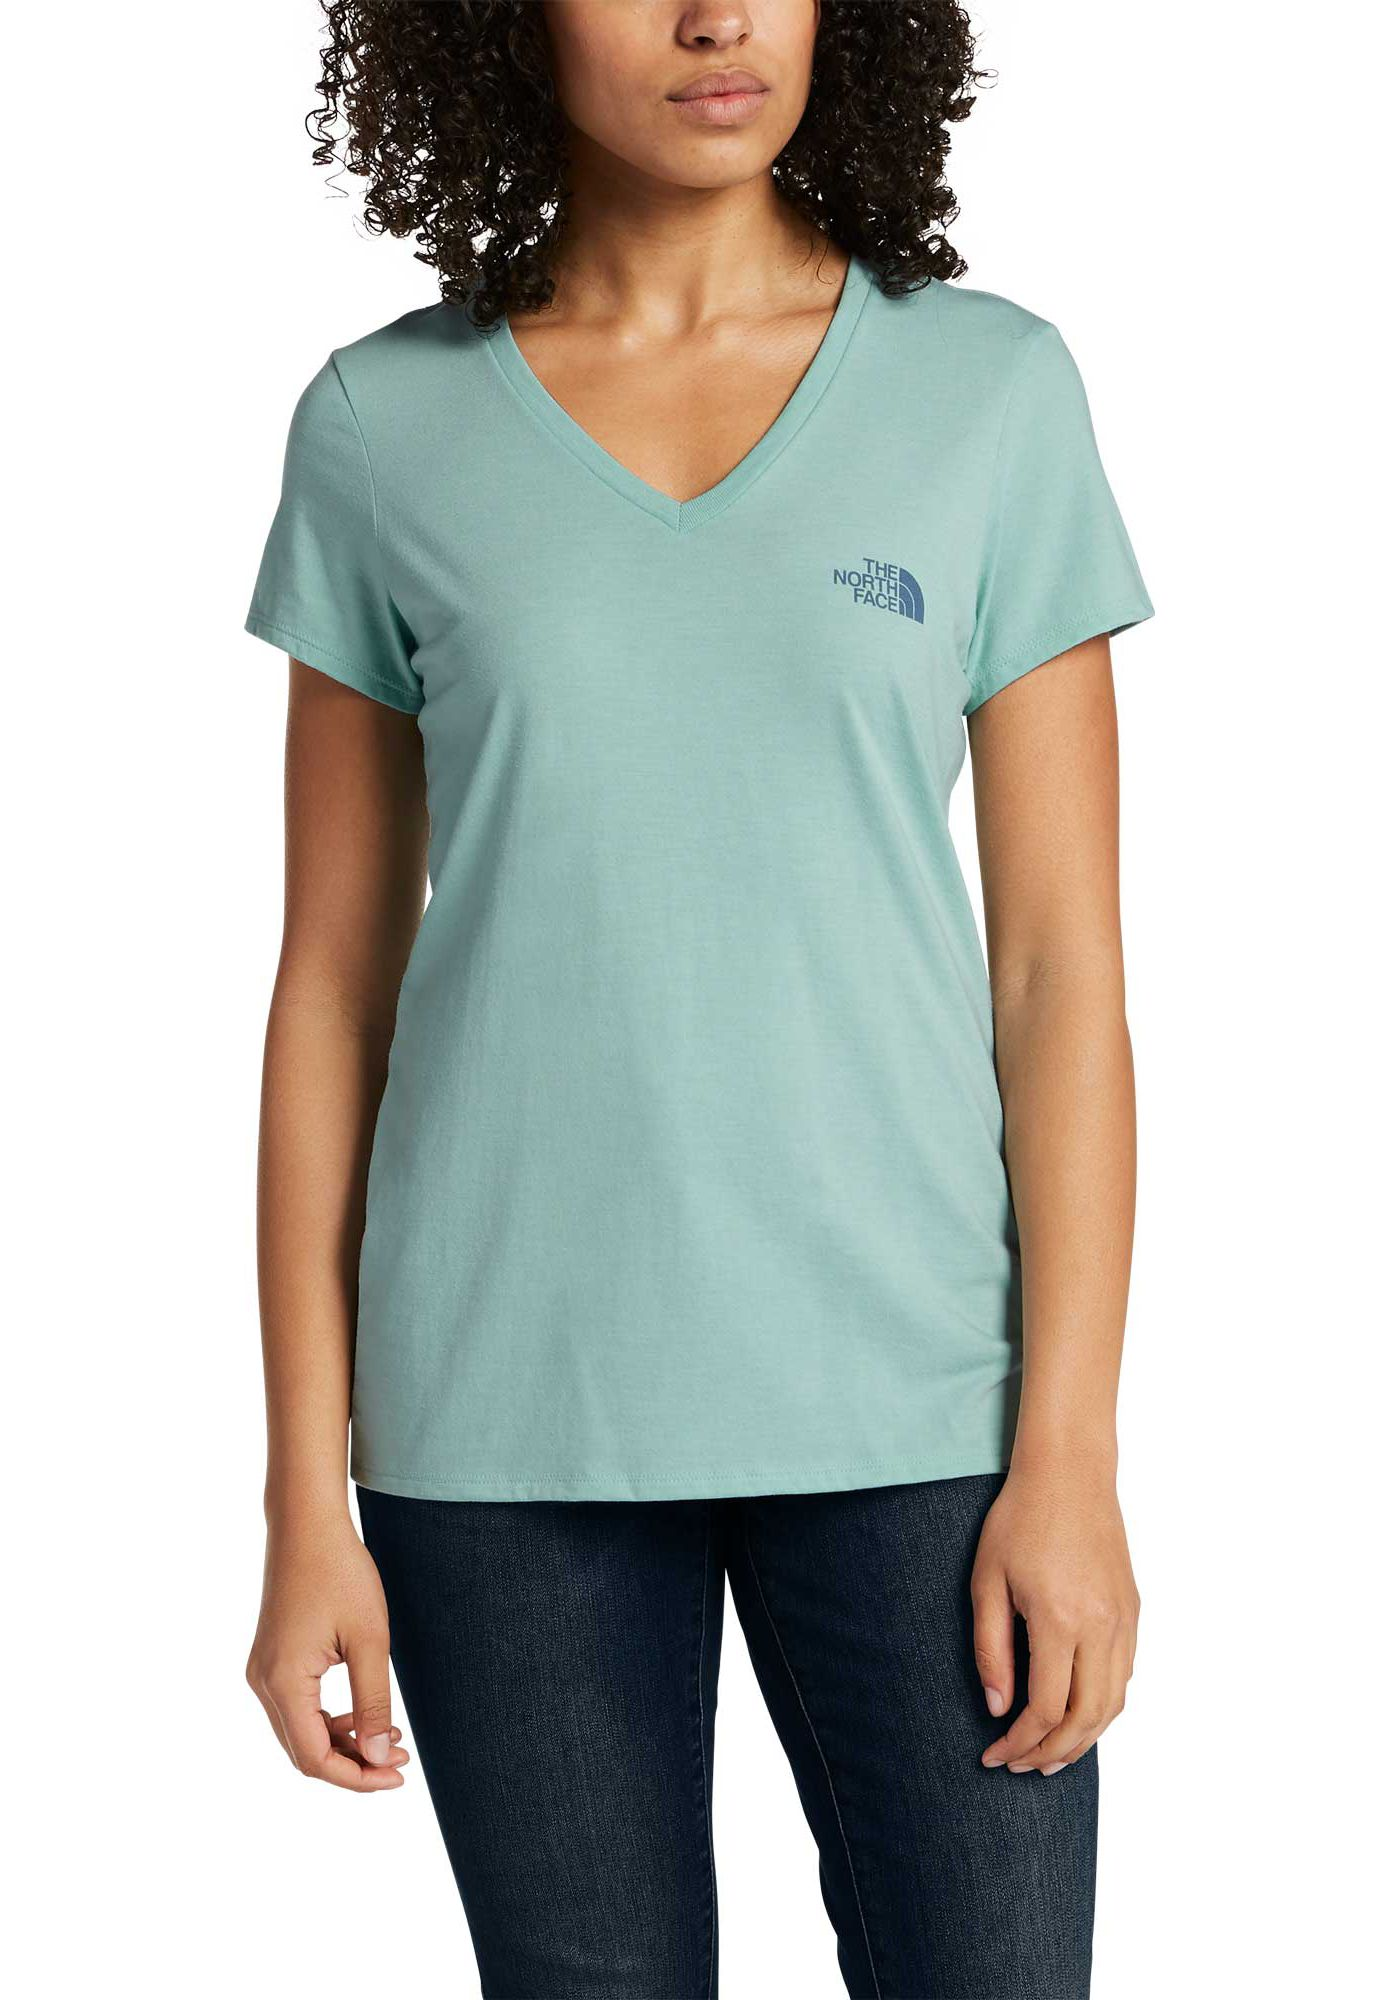 The North Face Women's Short Sleeve Brand Proud Tri-Blend V-Neck Shirt